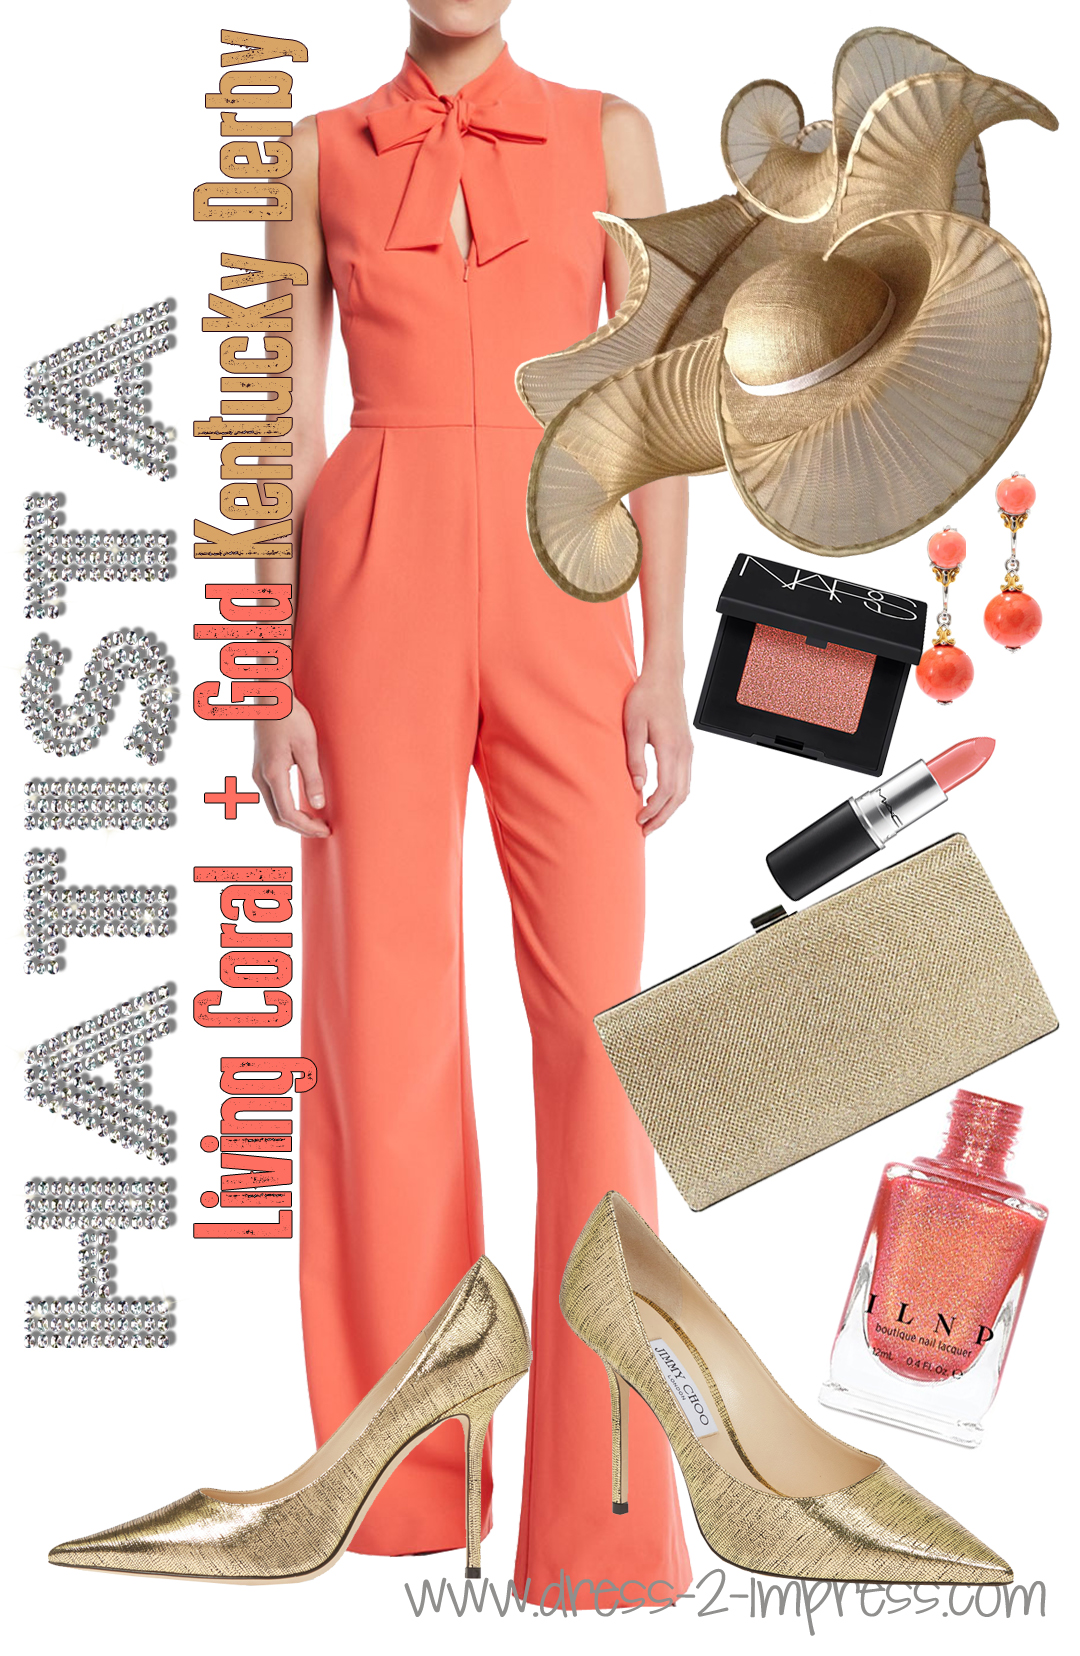 How to wear Living Coral. Outfit ideas with Living Coral. How to wear Pantone Colour of the Year 2019 Living Coral. How to wear Coral. Coral Mother of the Bride Outfits. Kentucky Derby Outfits. Outfit ideas for Royal Ascot, What to wear for Royal Ascot Ladies Day. Coral Outfit ideas for the races